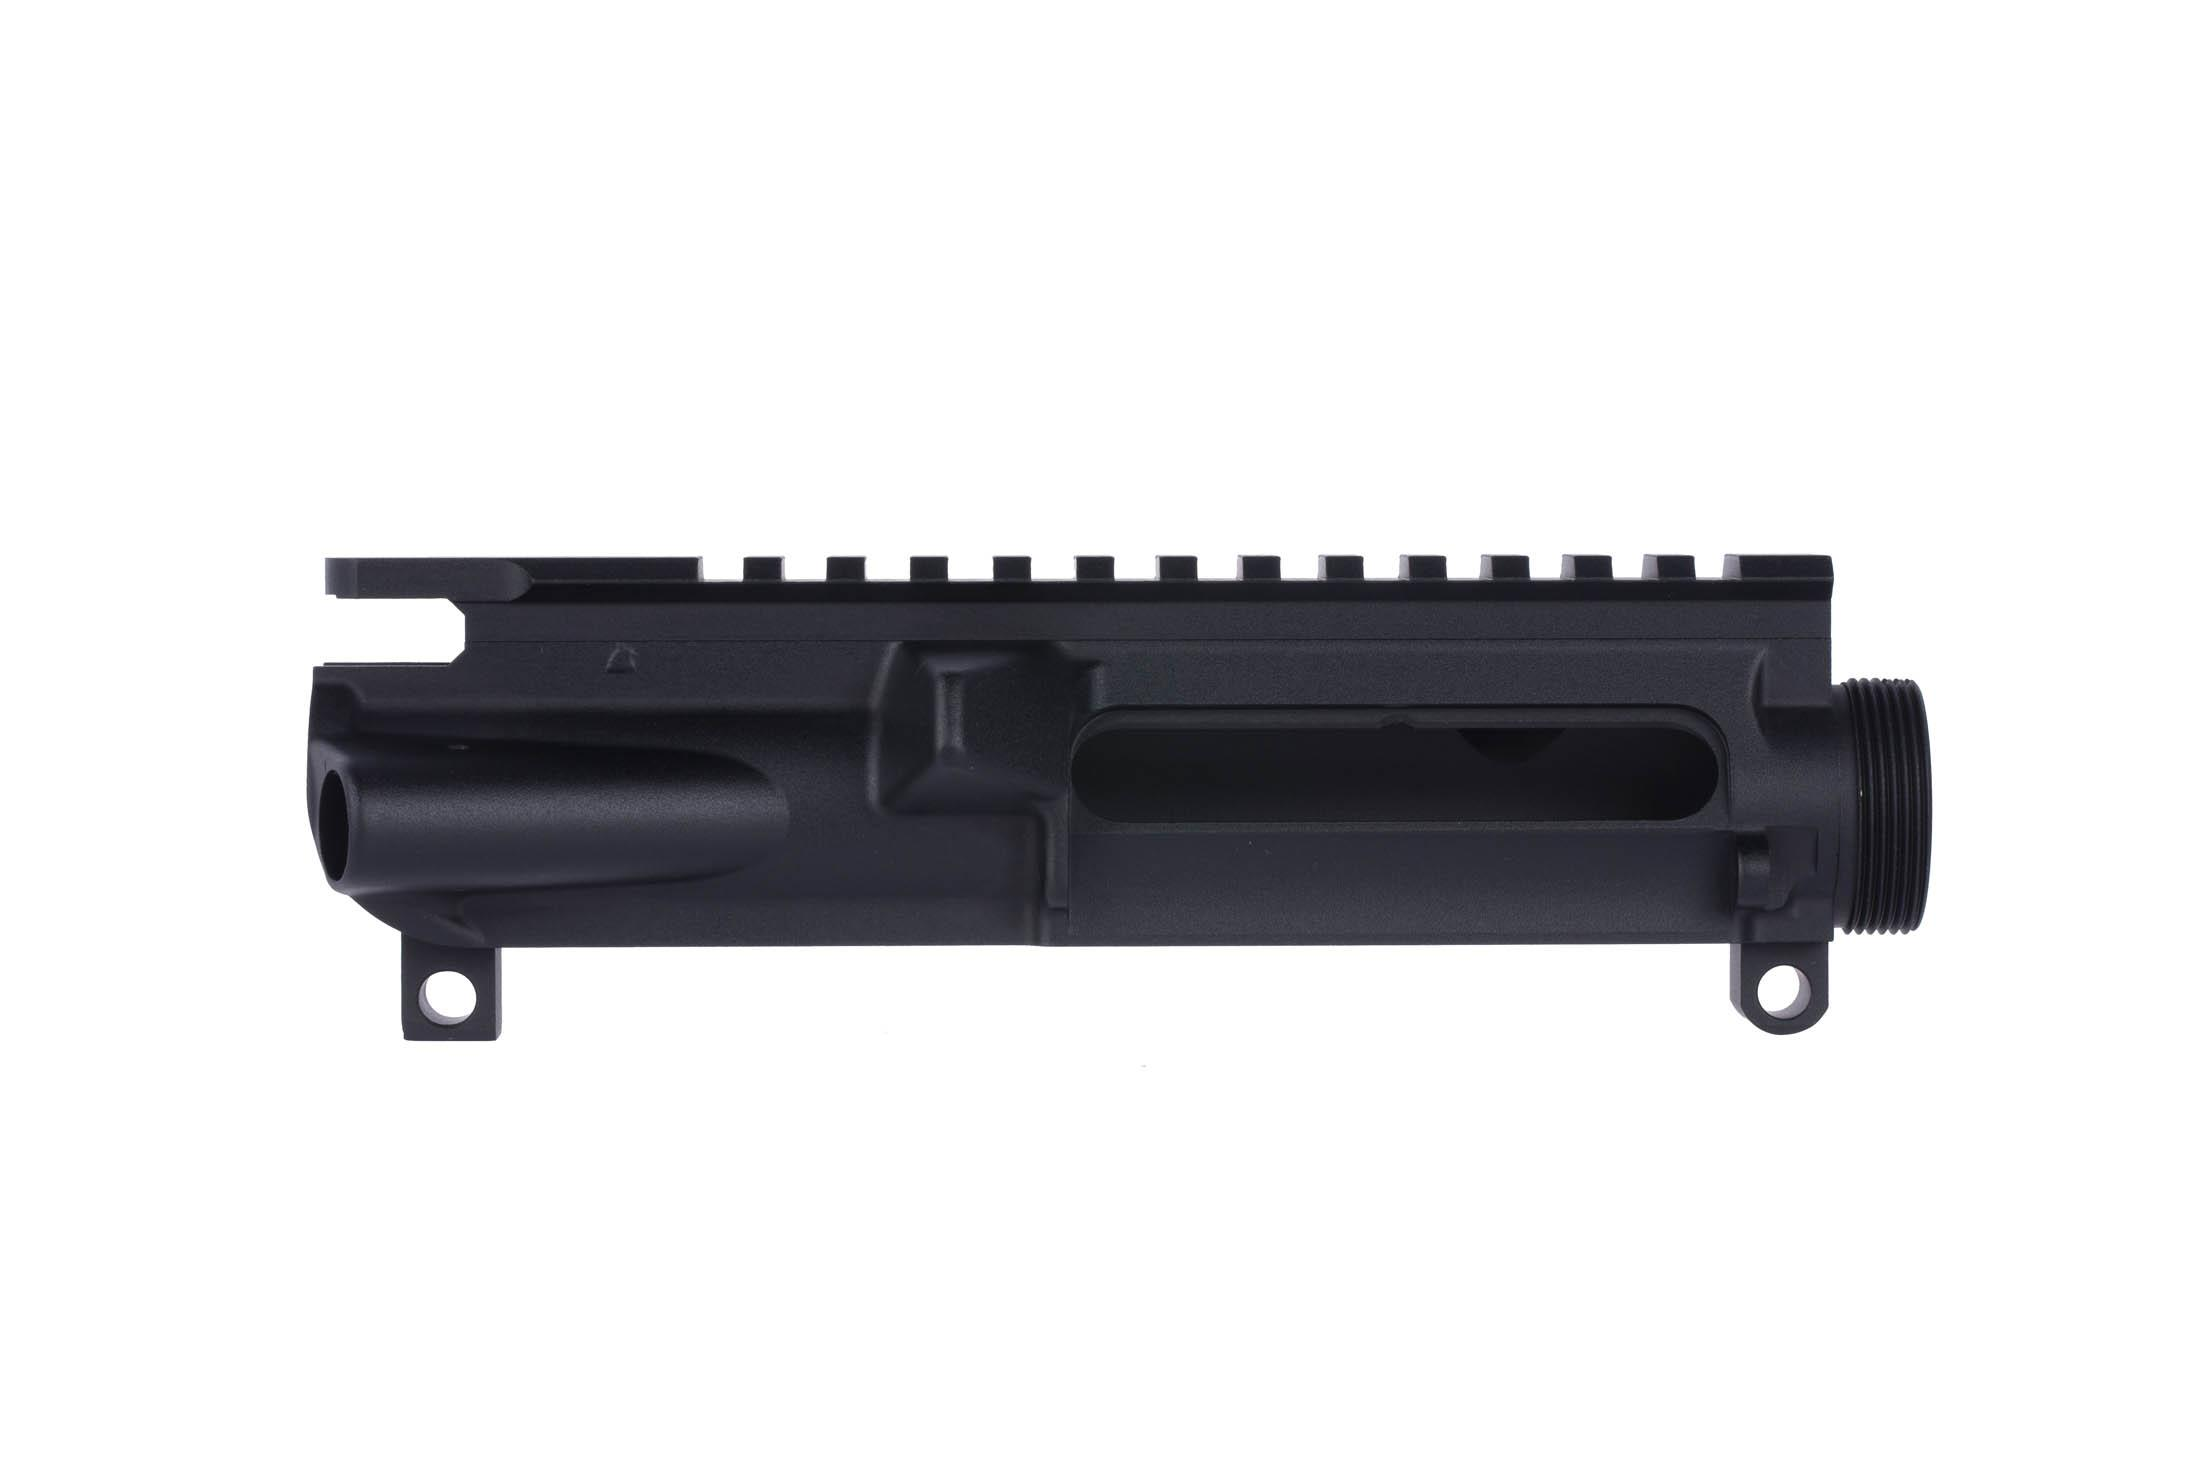 The Expo Arms AR-15 stripped upper receiver accepts MIL-SPEC components